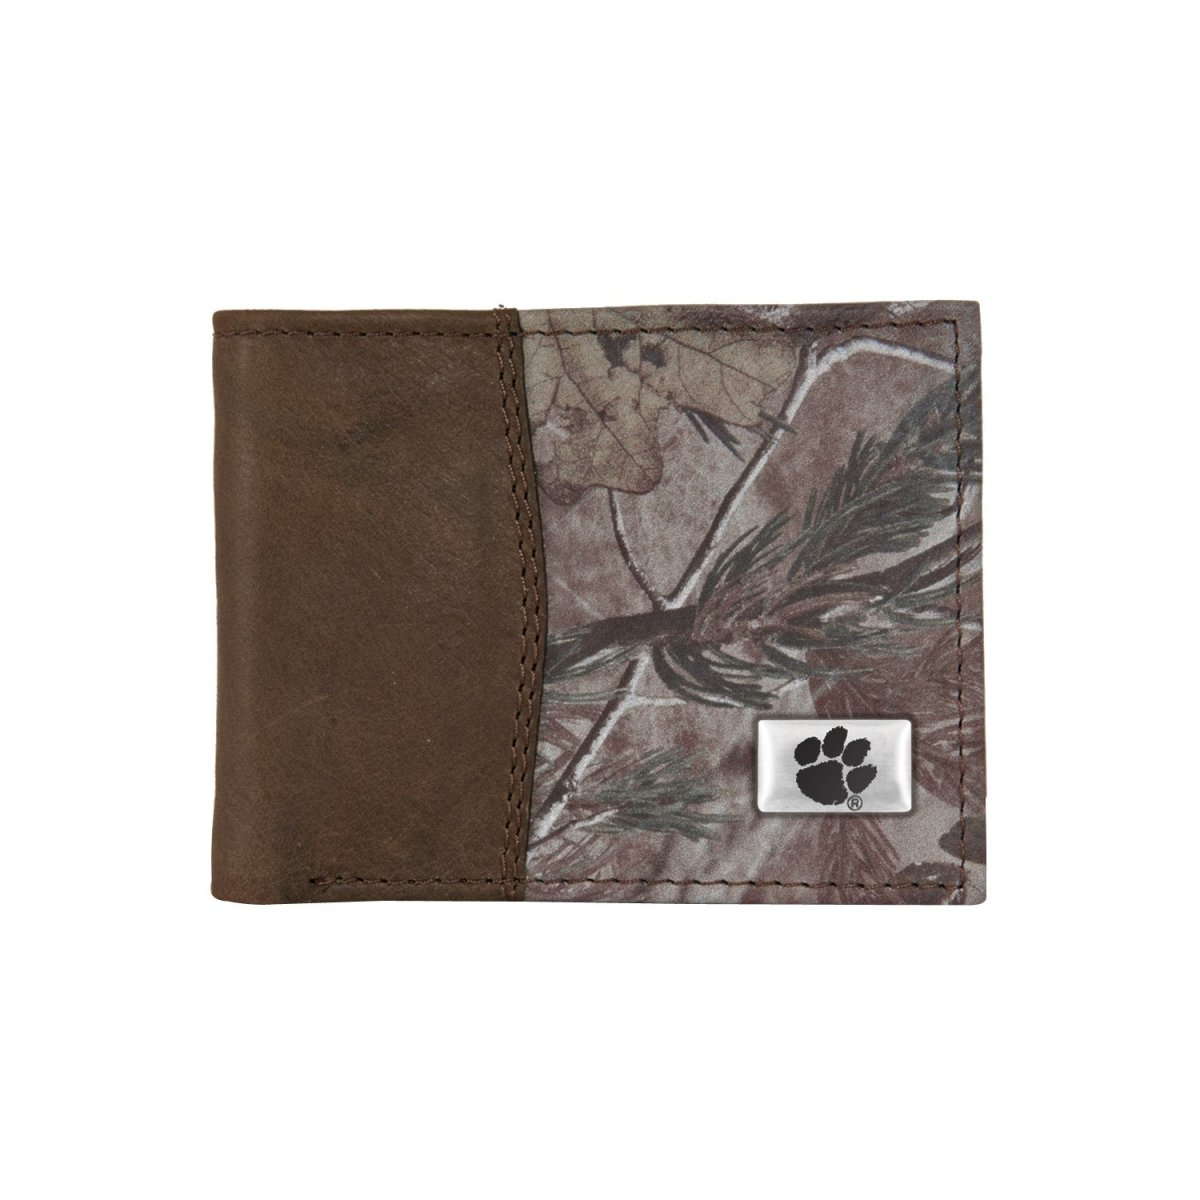 Brown Leather and Camo Bifold Wallet With Silver/black Paw Concho - Mr. Knickerbocker